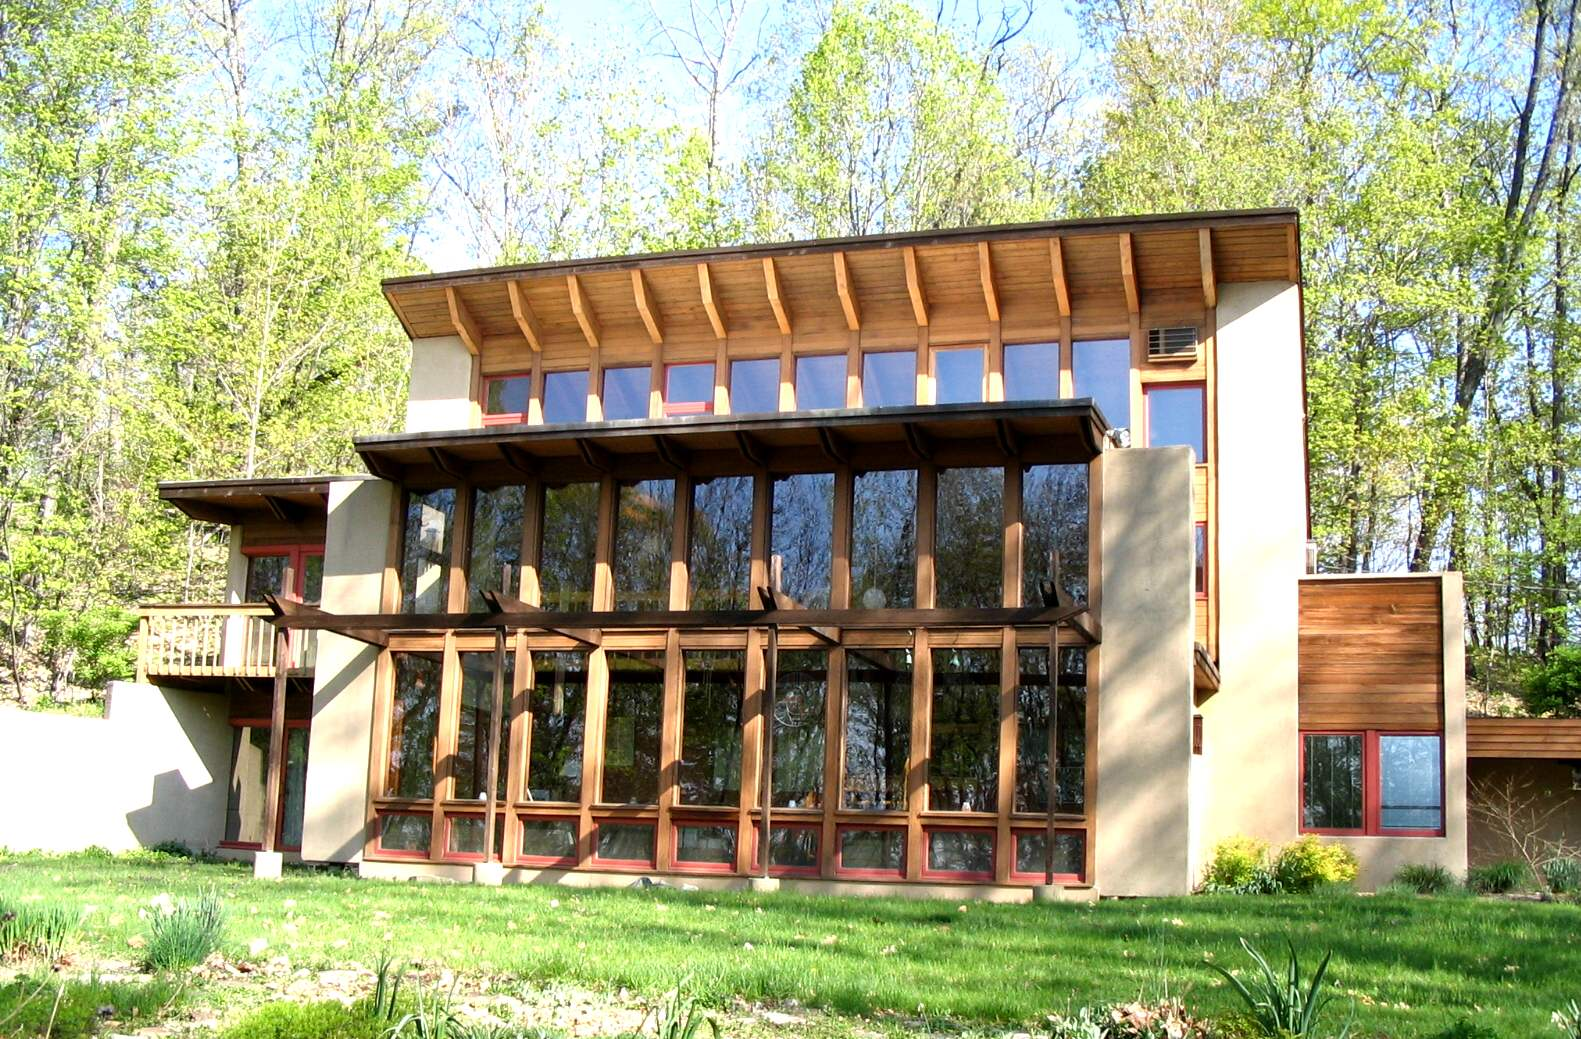 Passive solar home energysage for Earth sheltered home design